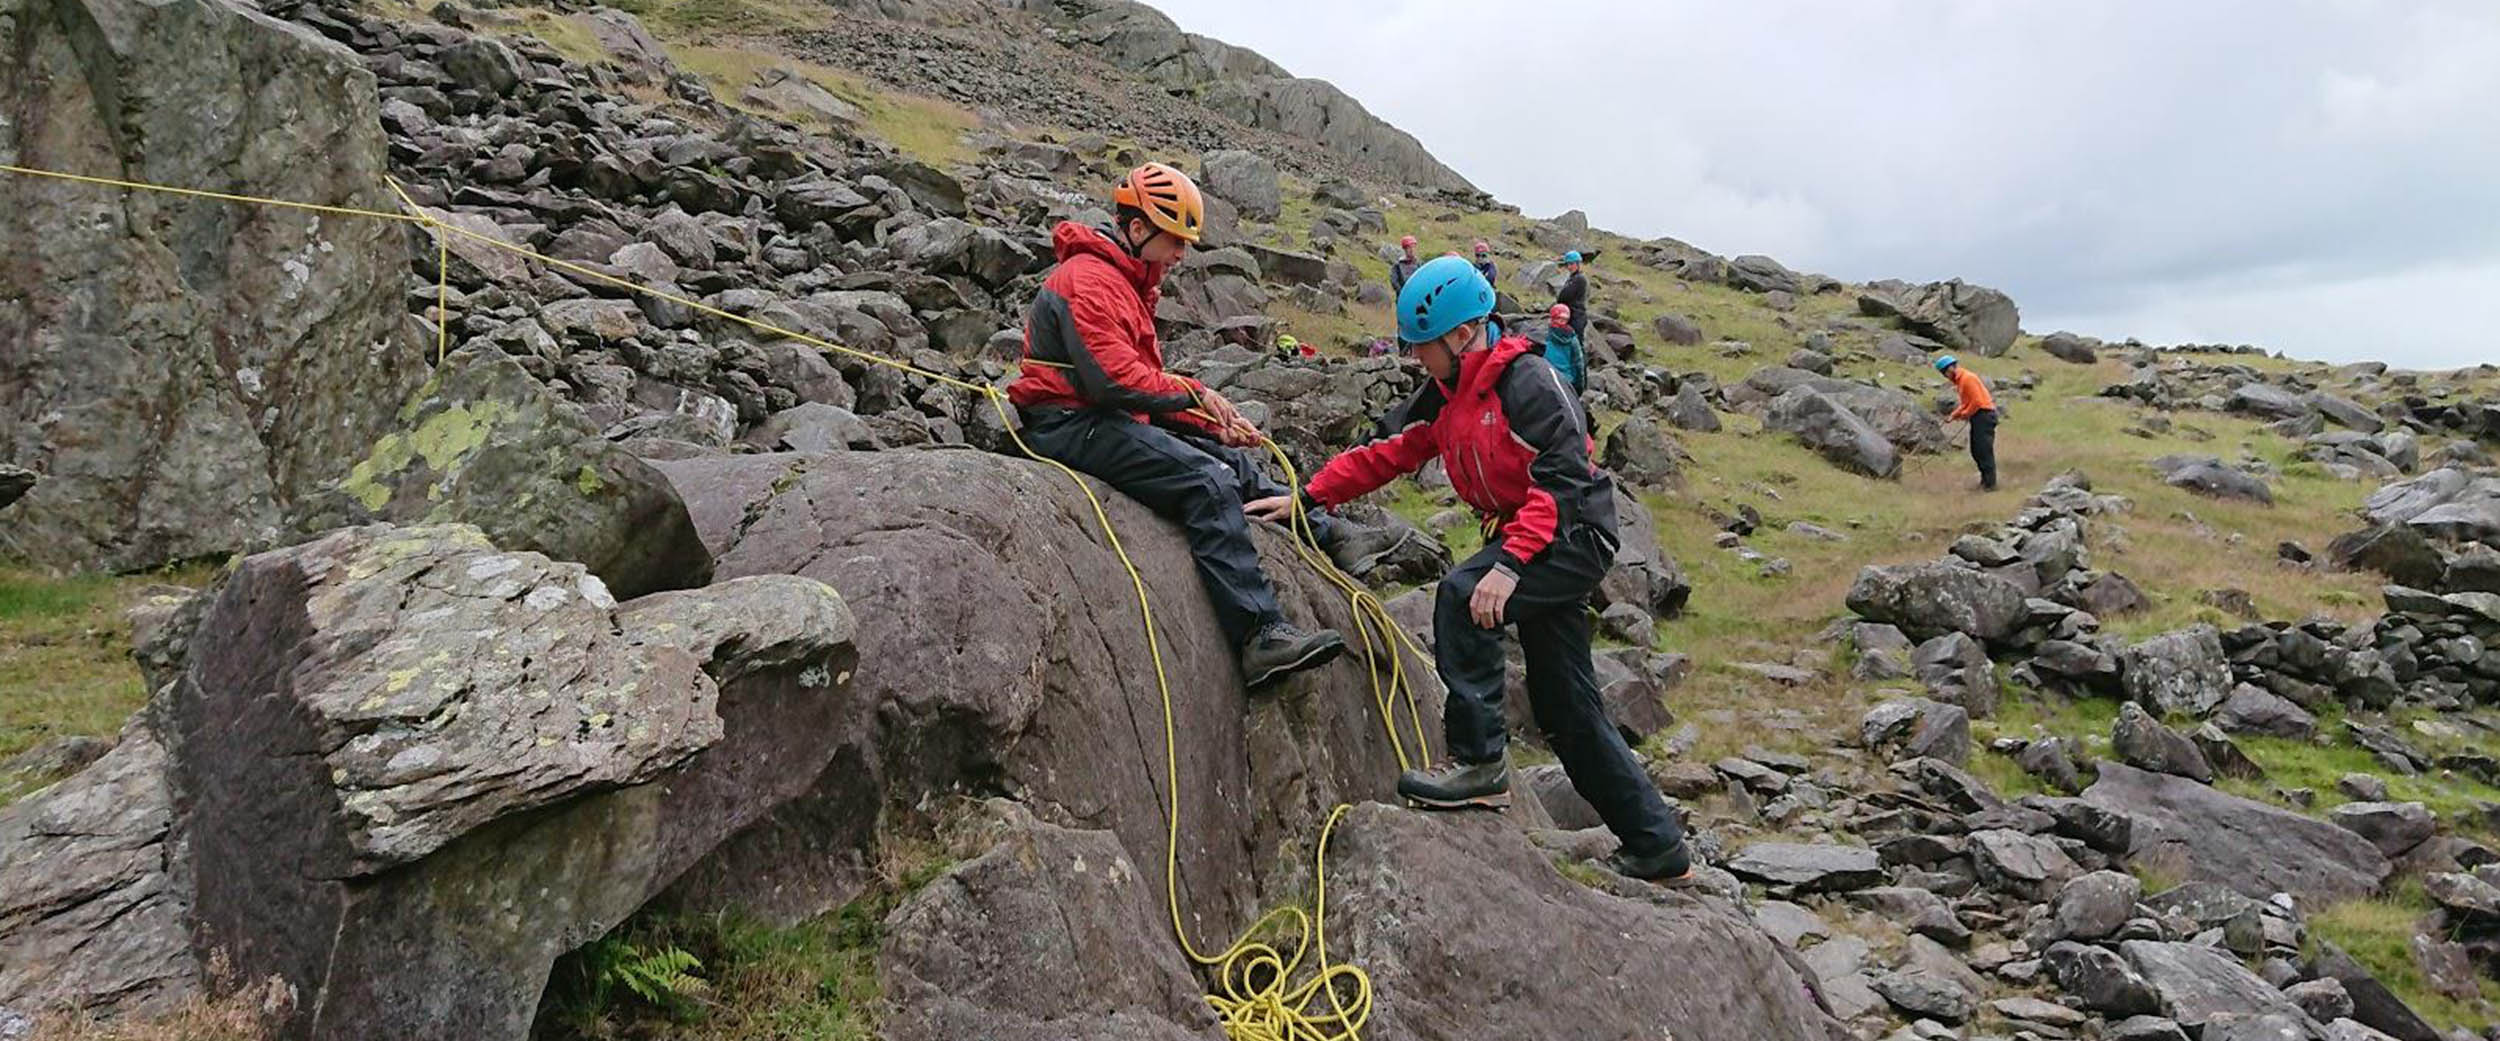 Two mountaineers perched on some boulders demonstrate scrambling rope work